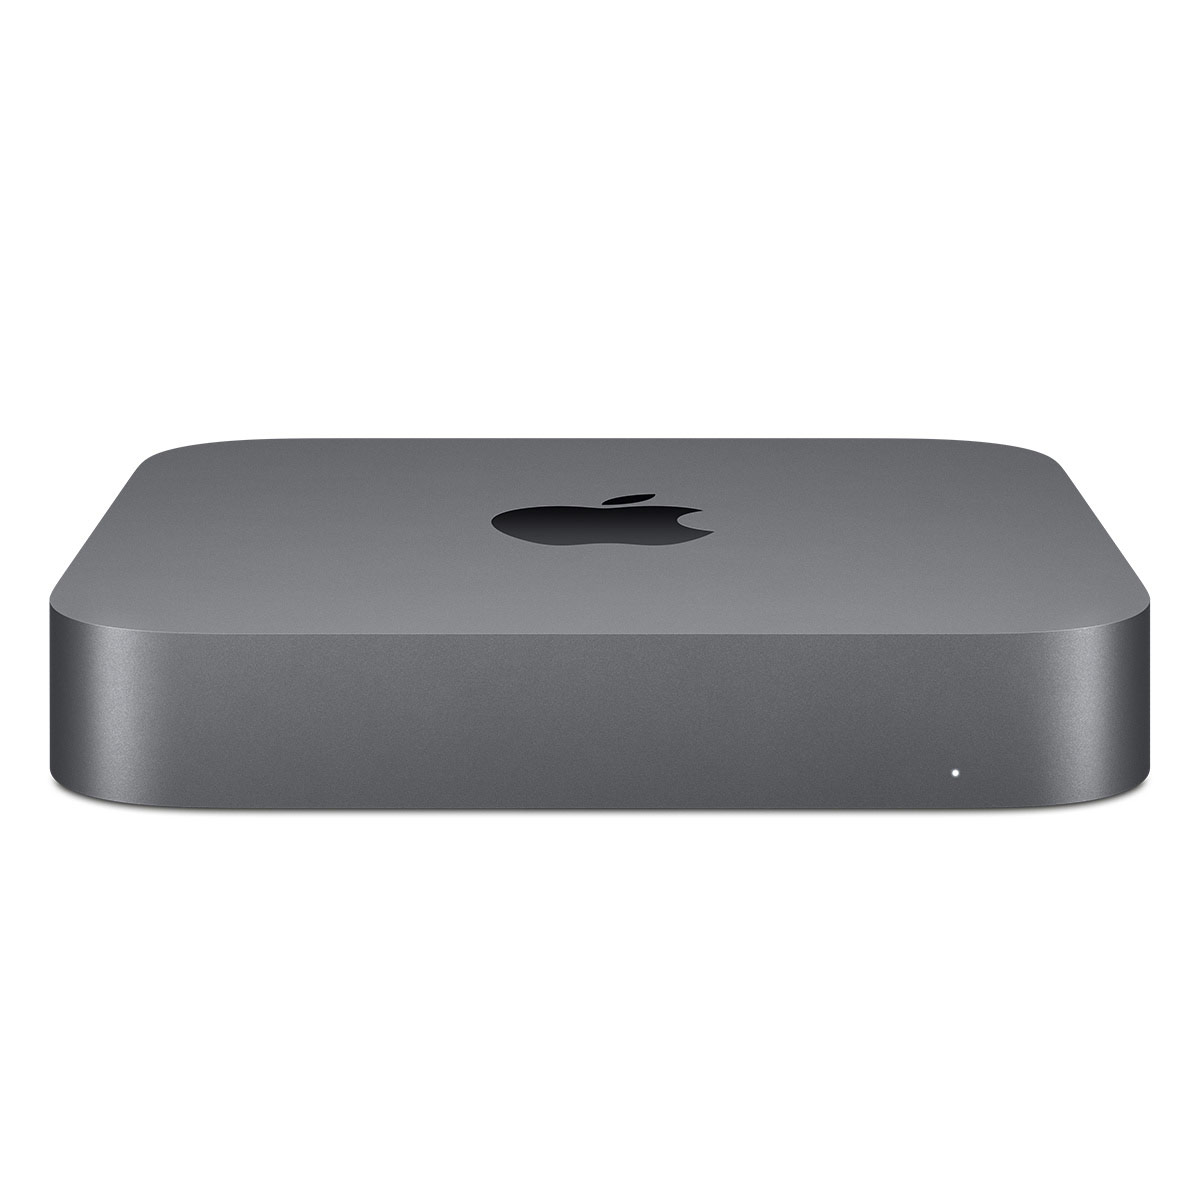 Mac mini 6 Core i5 3.0GHz 8GB 256GB Flash Intel UHD 630 1Gb